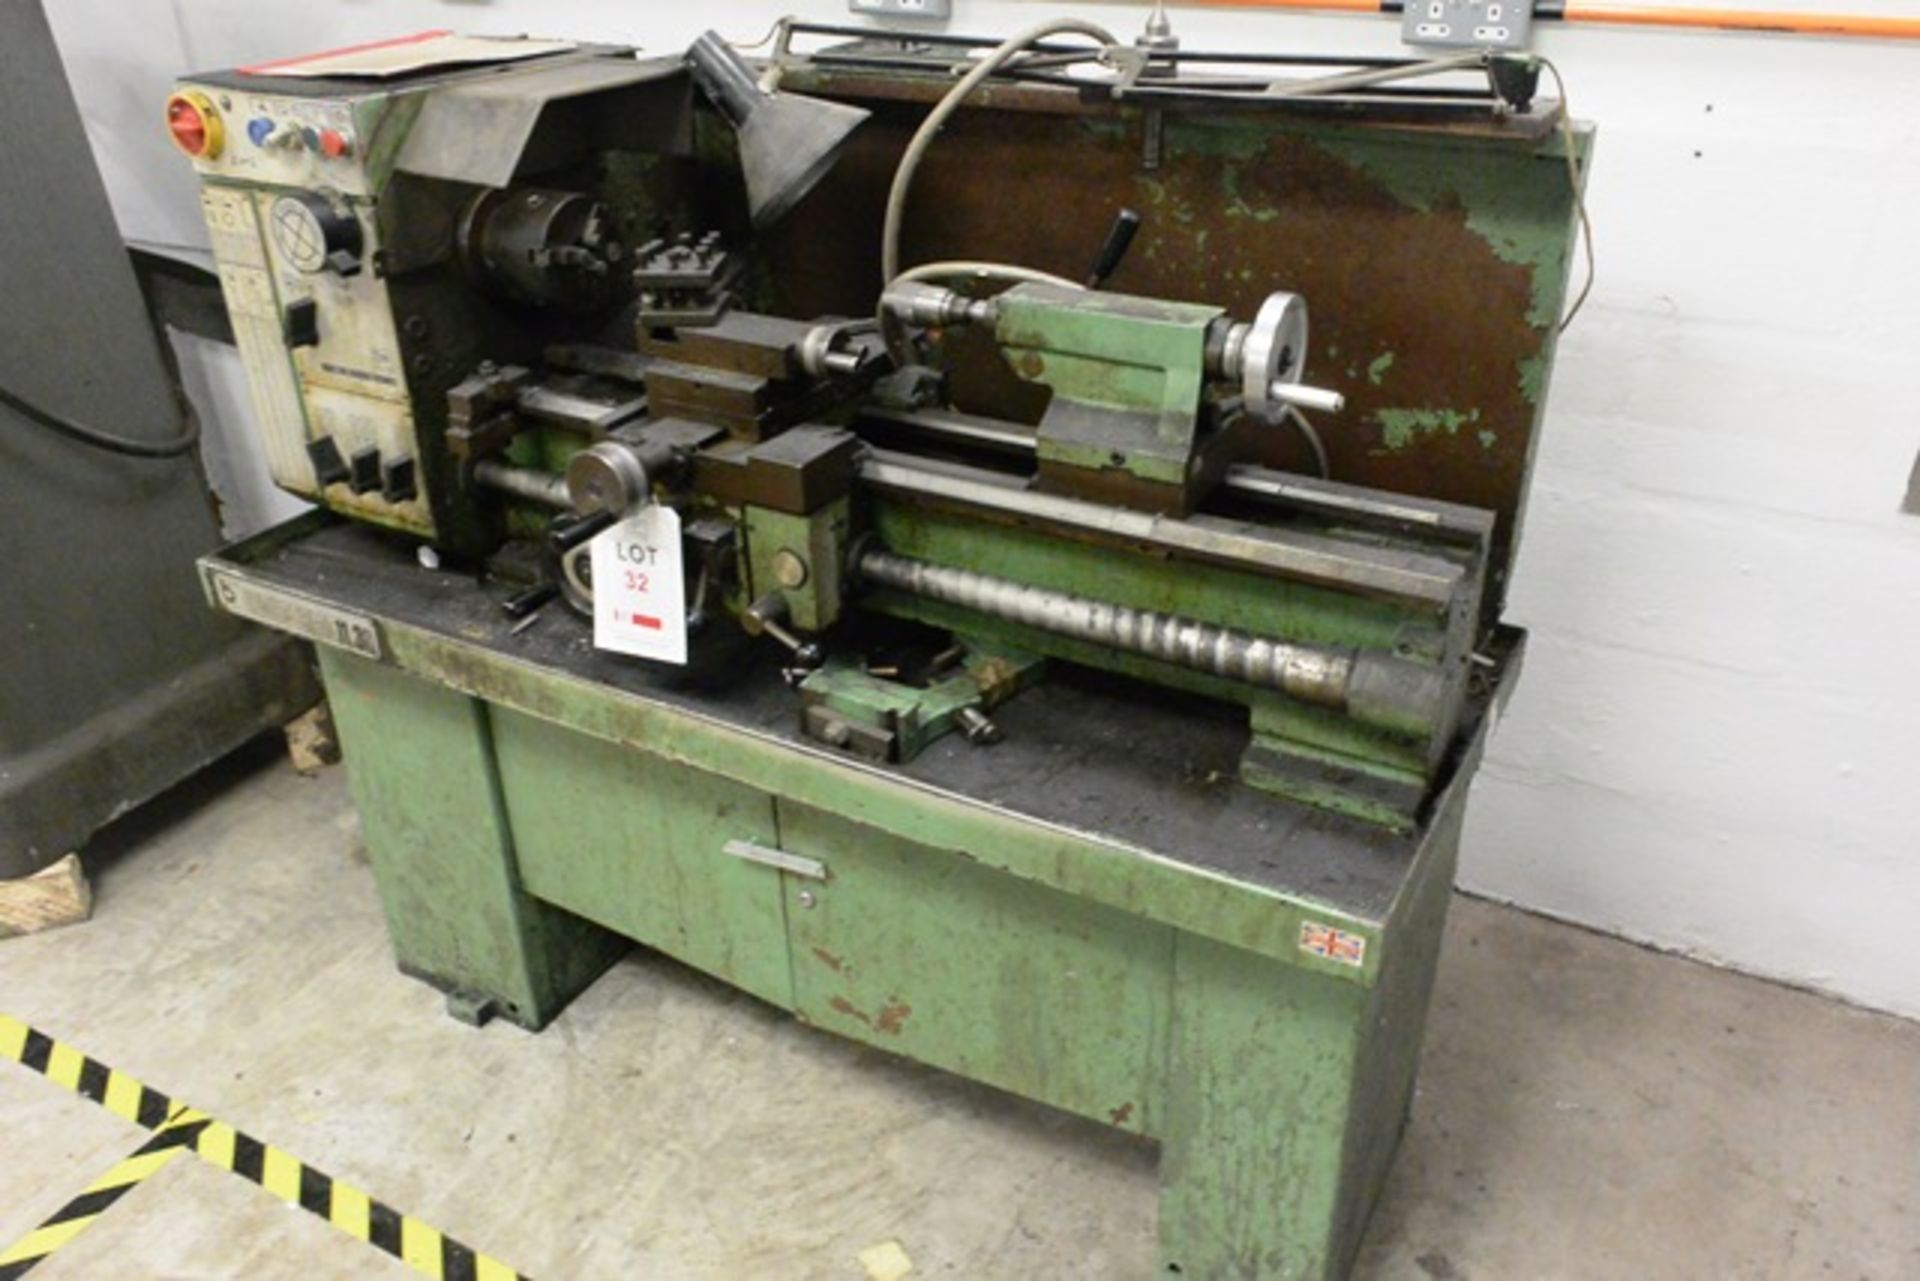 Boxford Industrial 11.30, centre lathe, model: Engineer, distance between centres 770mm, 3 jaw chuck - Image 3 of 4